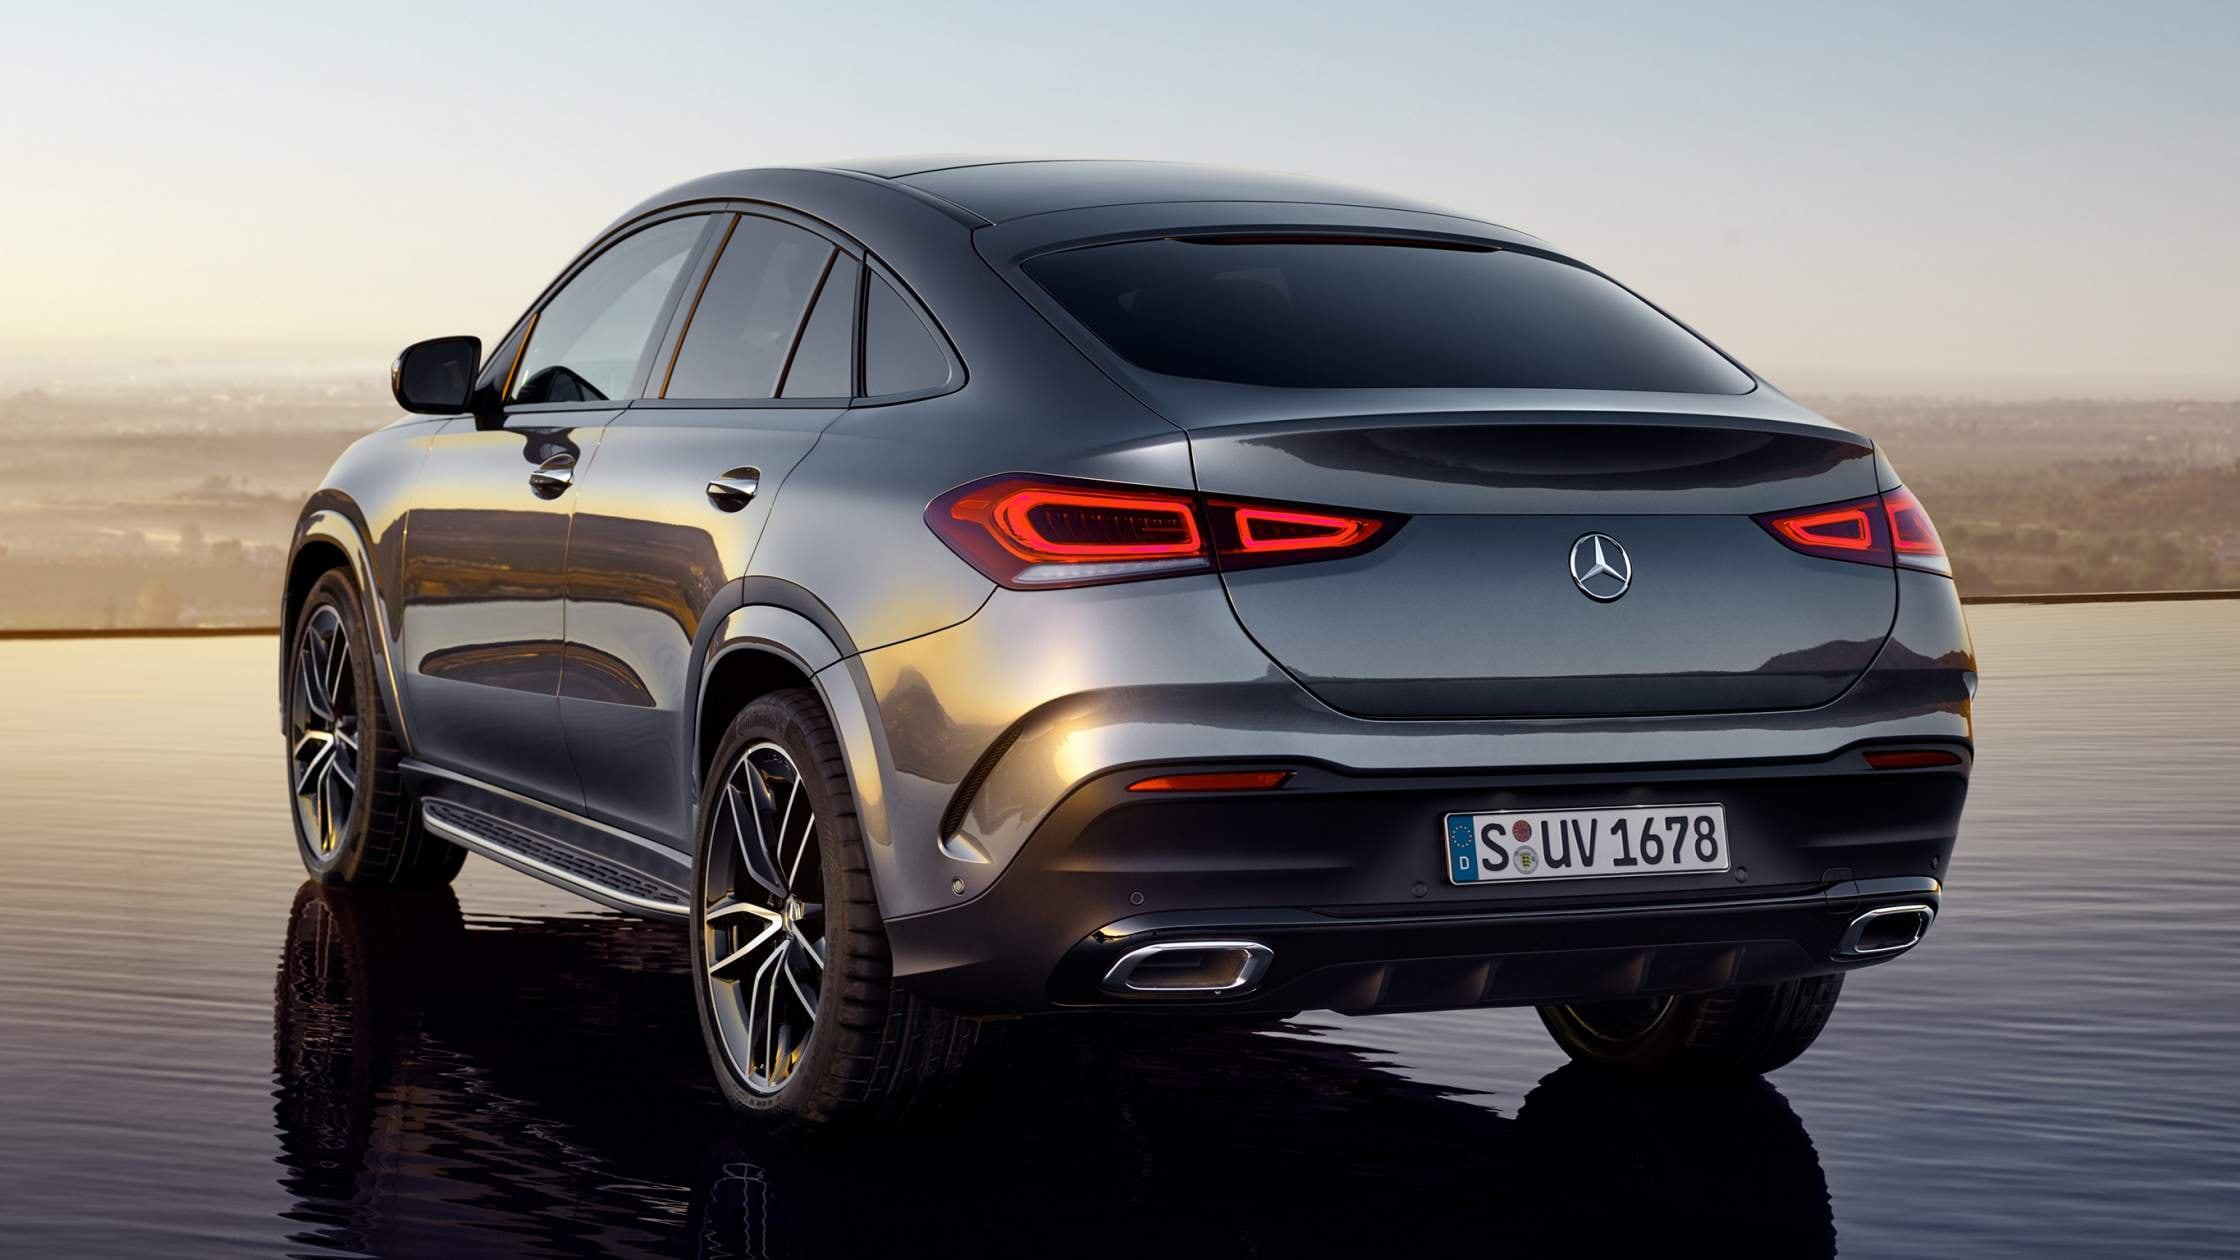 CAR-Avenue-Mercedes-Benz-GLE-Coupe-SUV-04